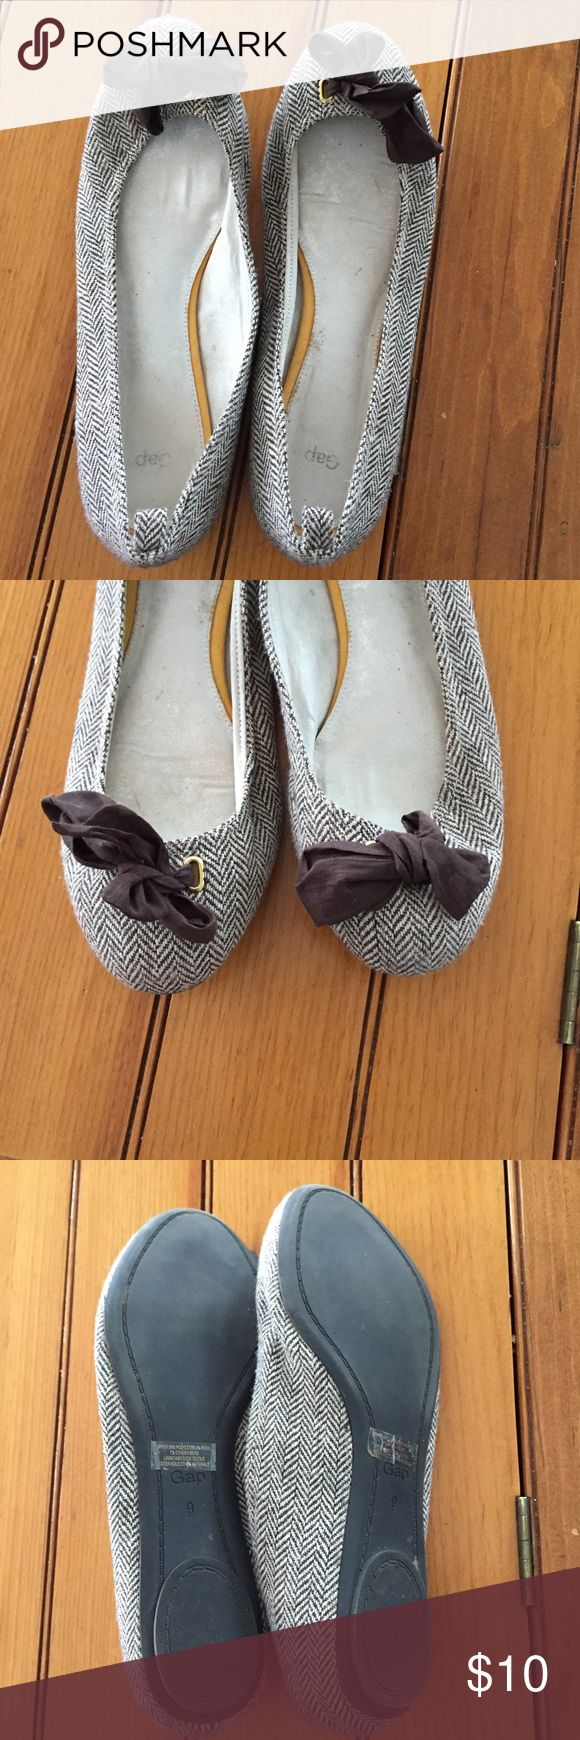 [Gap] Brown Bow Flats Size 9. Barely worn in good used condition! GAP Shoes Flats & Loafers